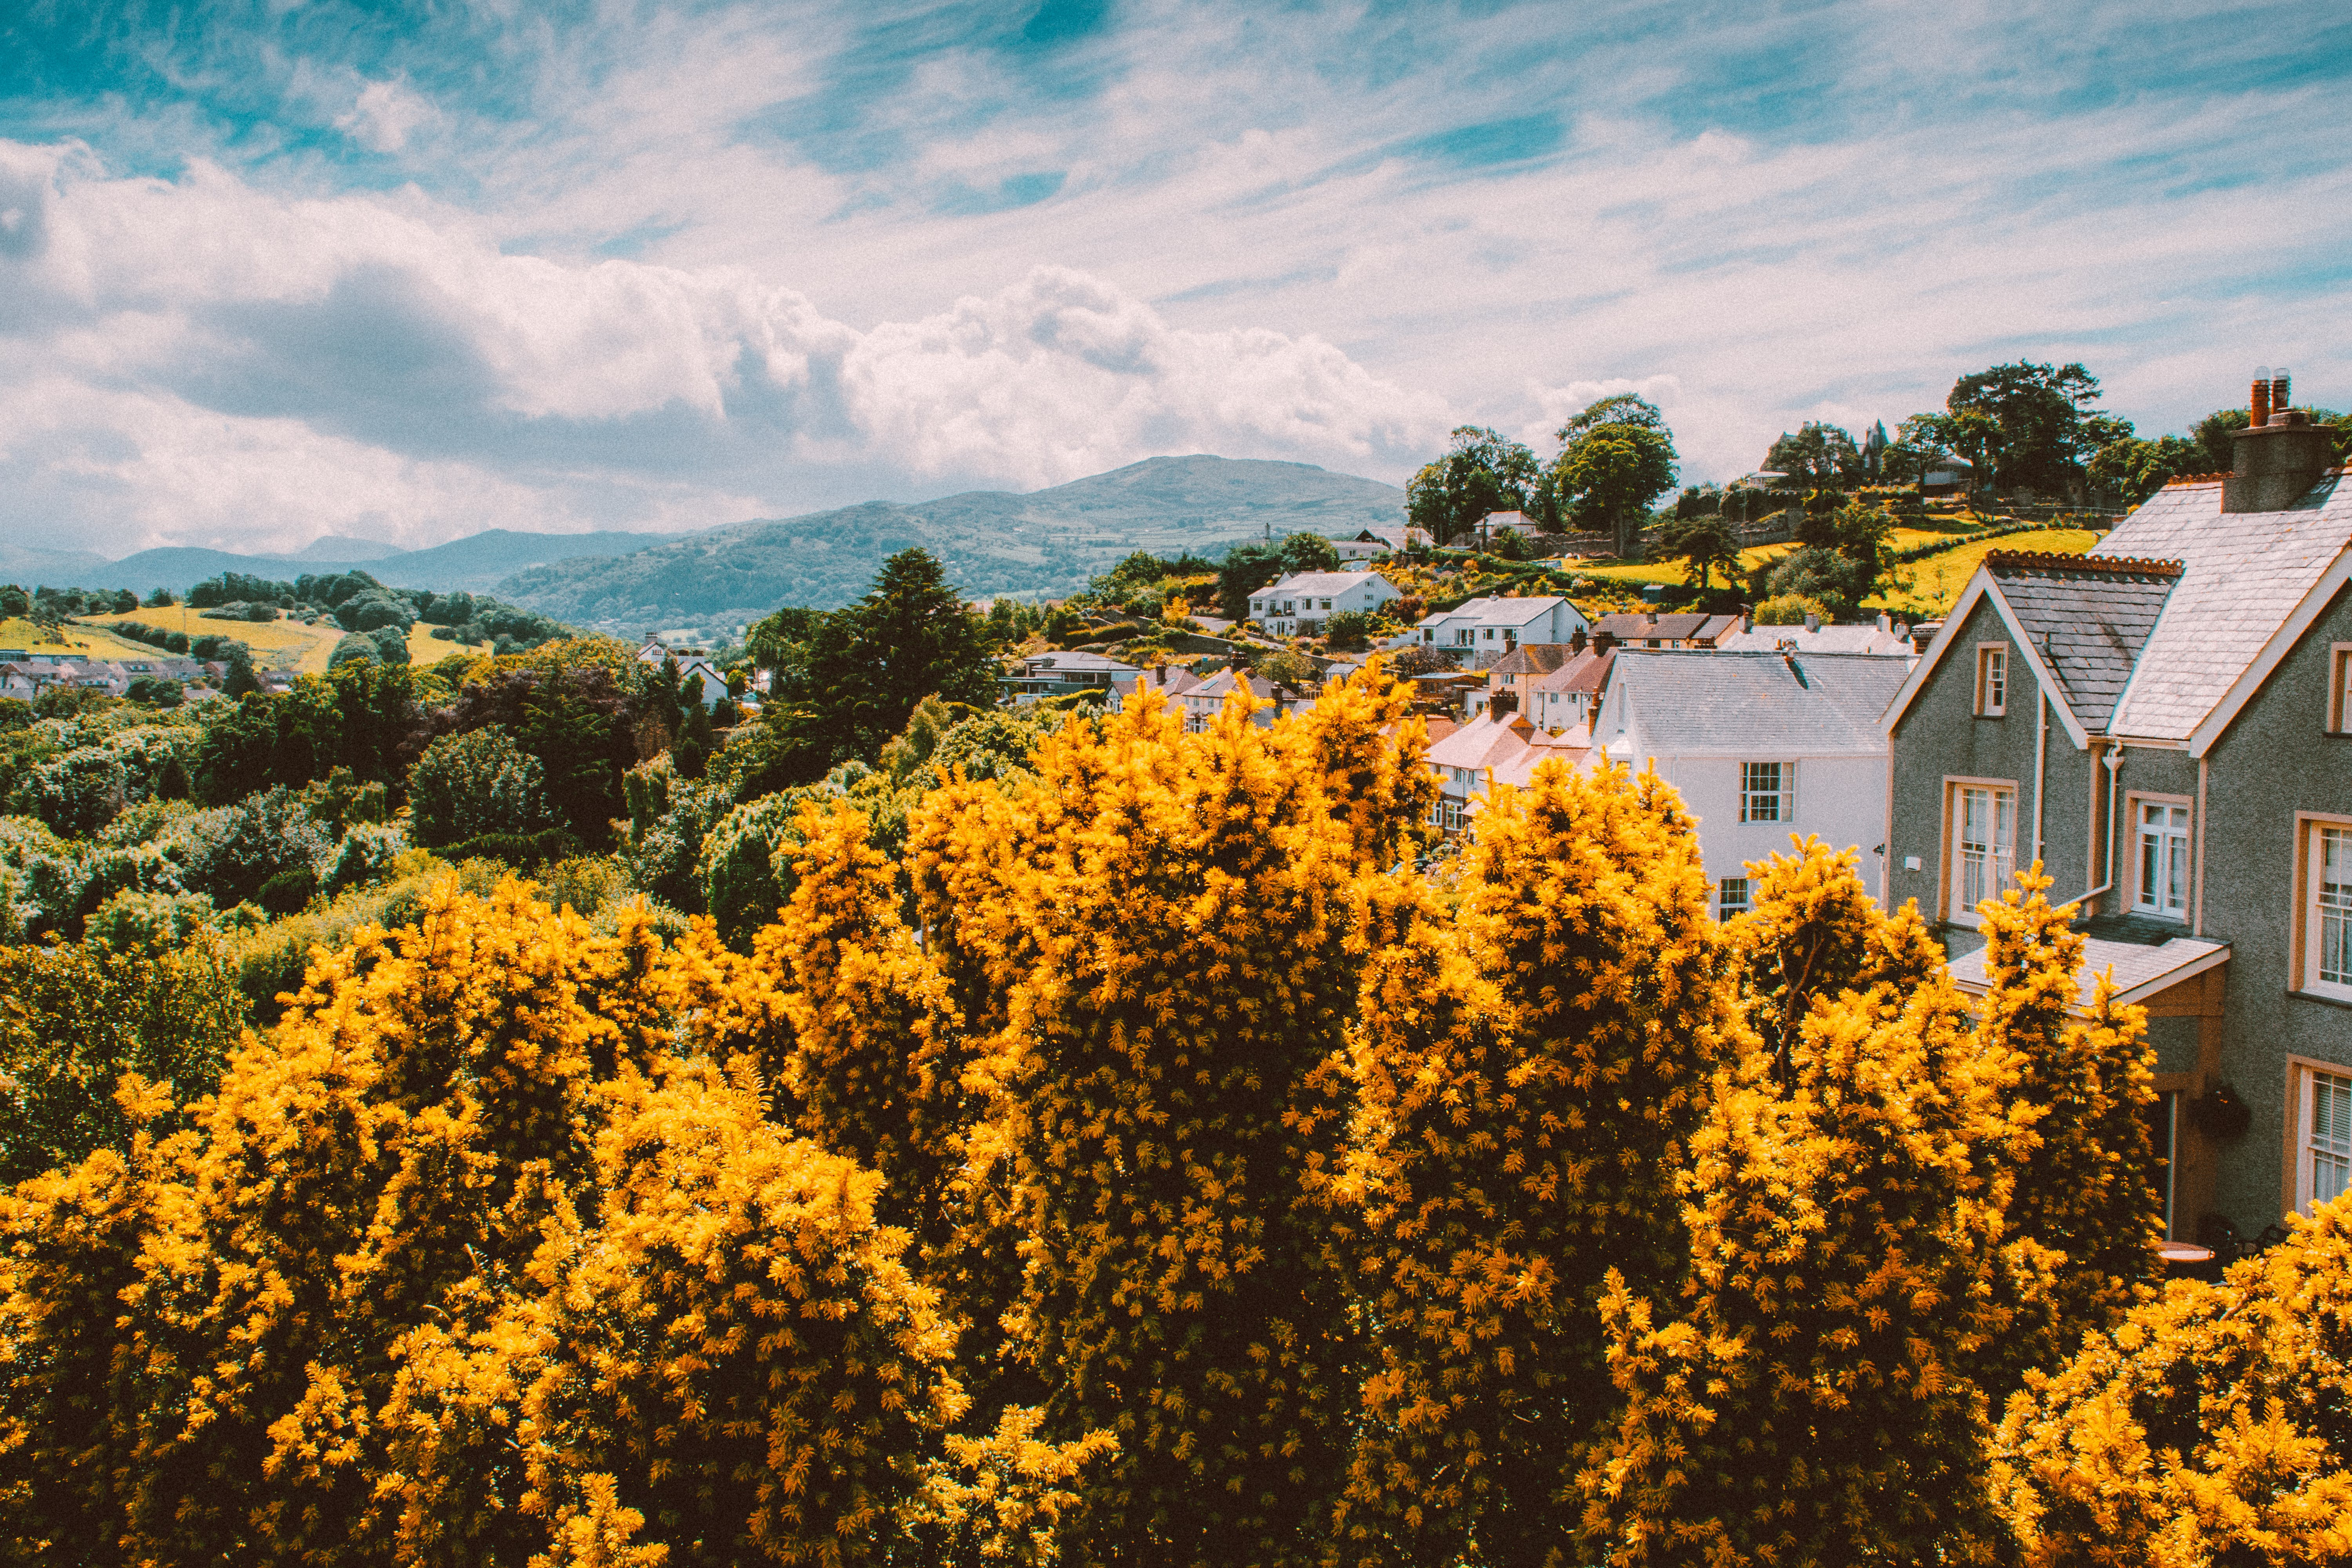 Yellow Tress Surrounded By Houses